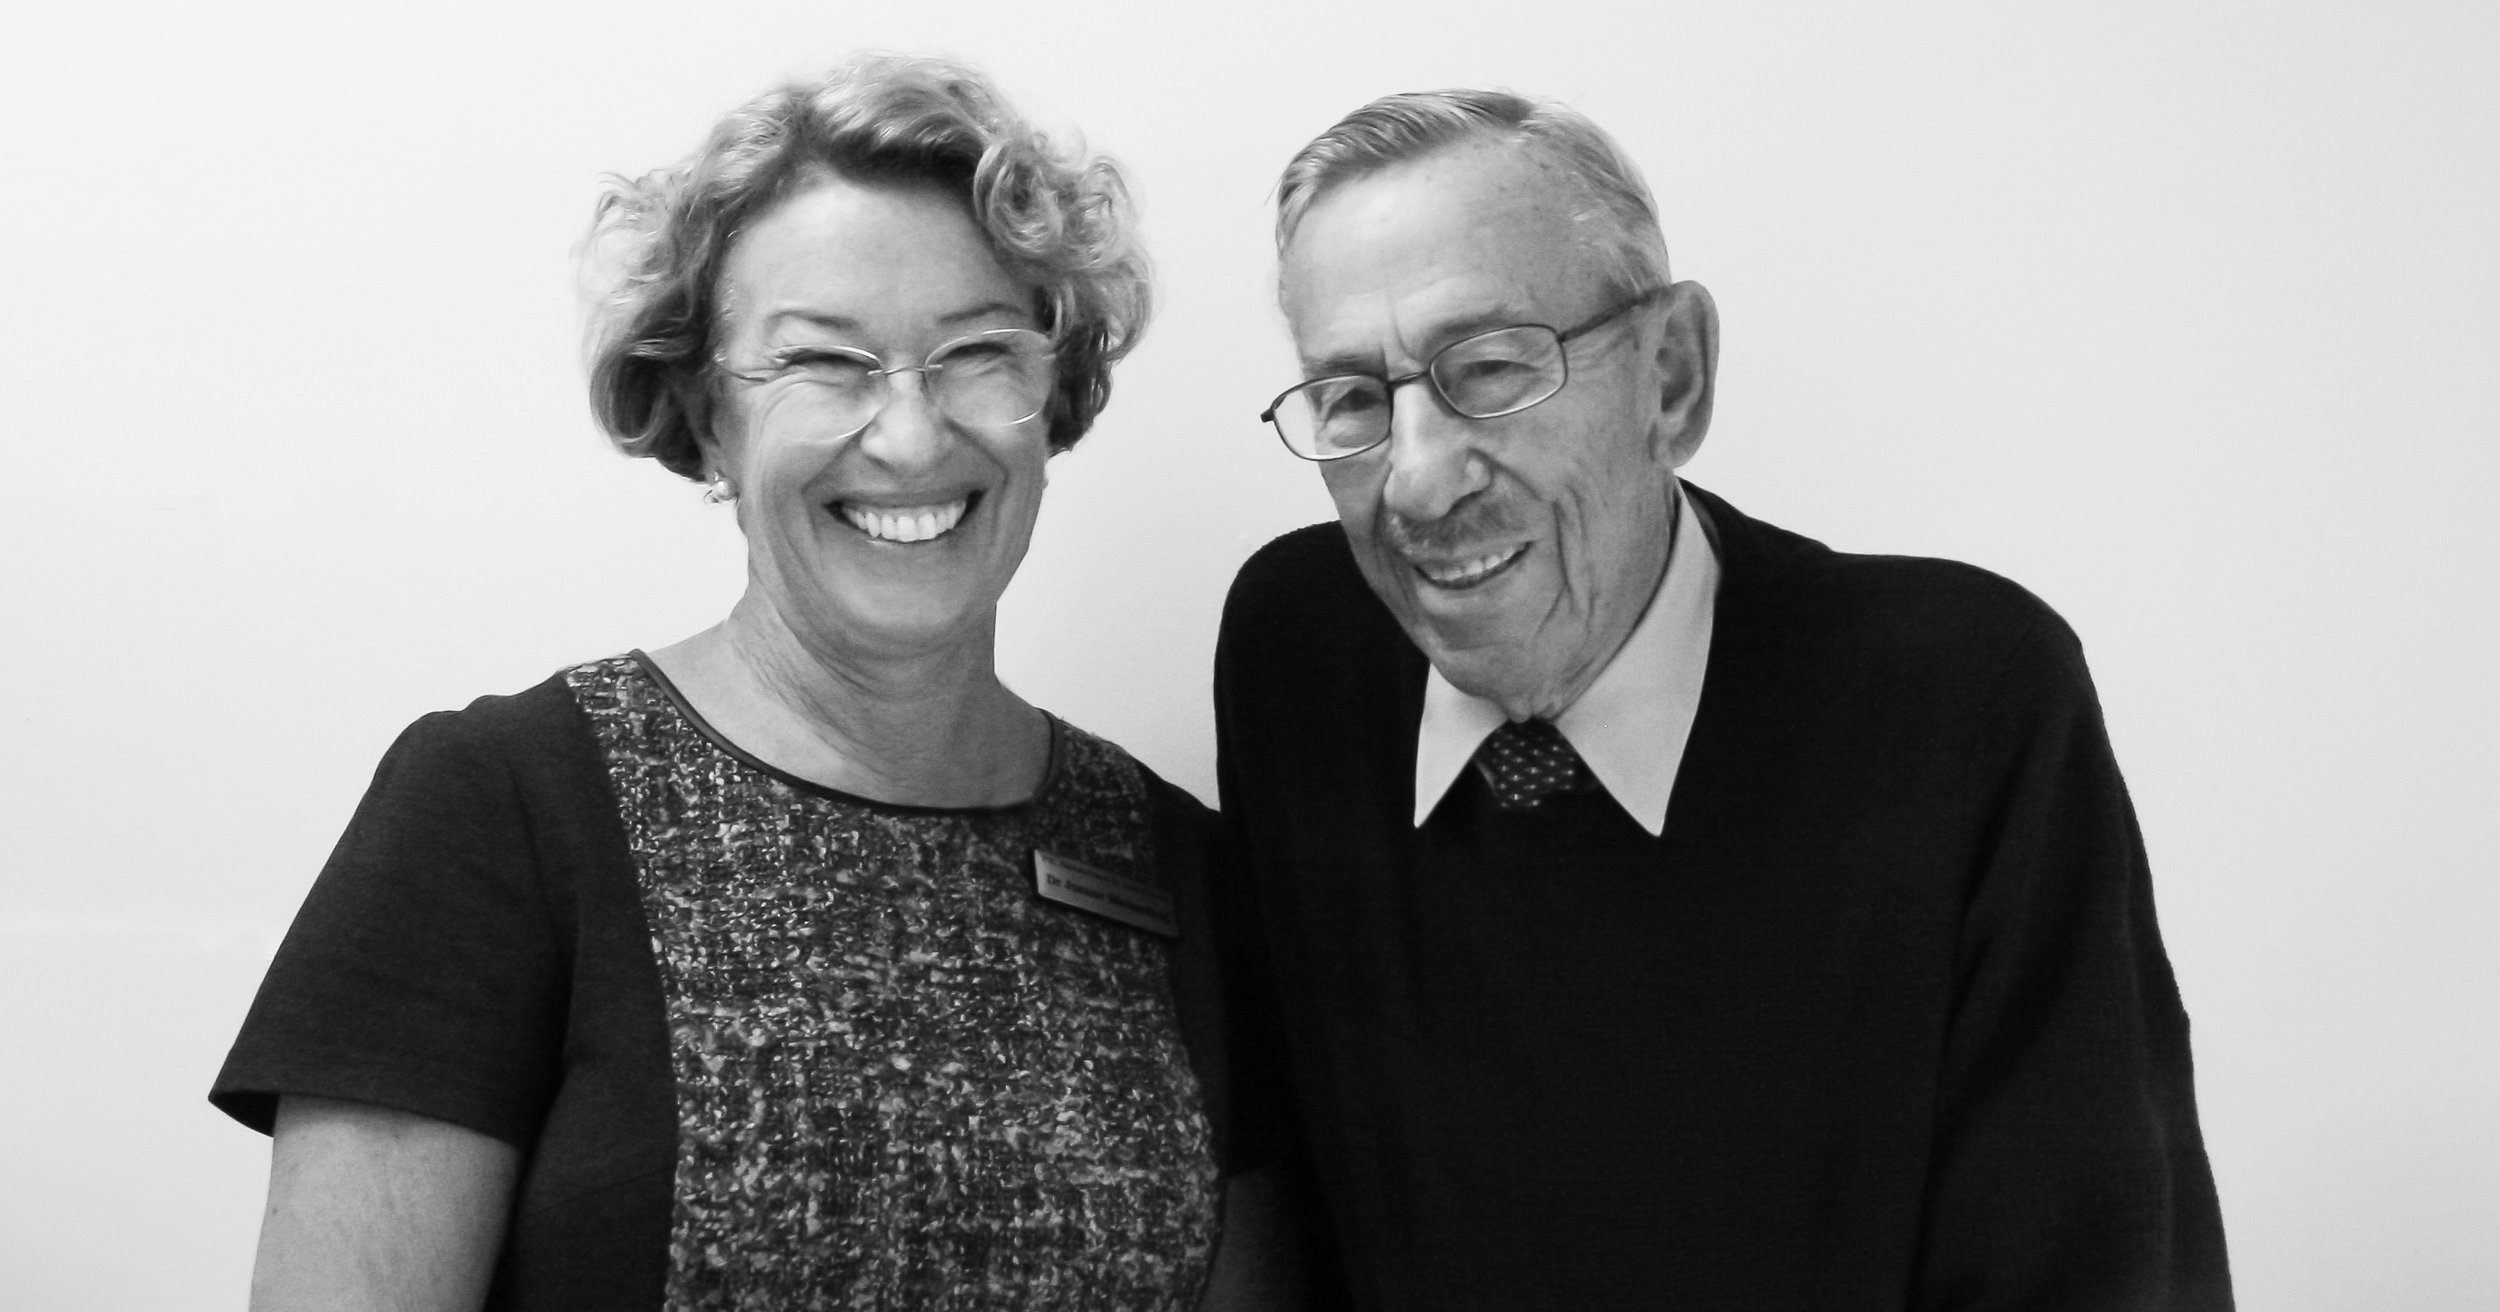 Peter K Richardson started the practice over forty years ago and although retired, he still has a strong interest in the family practice run by his daughter, Joanne.